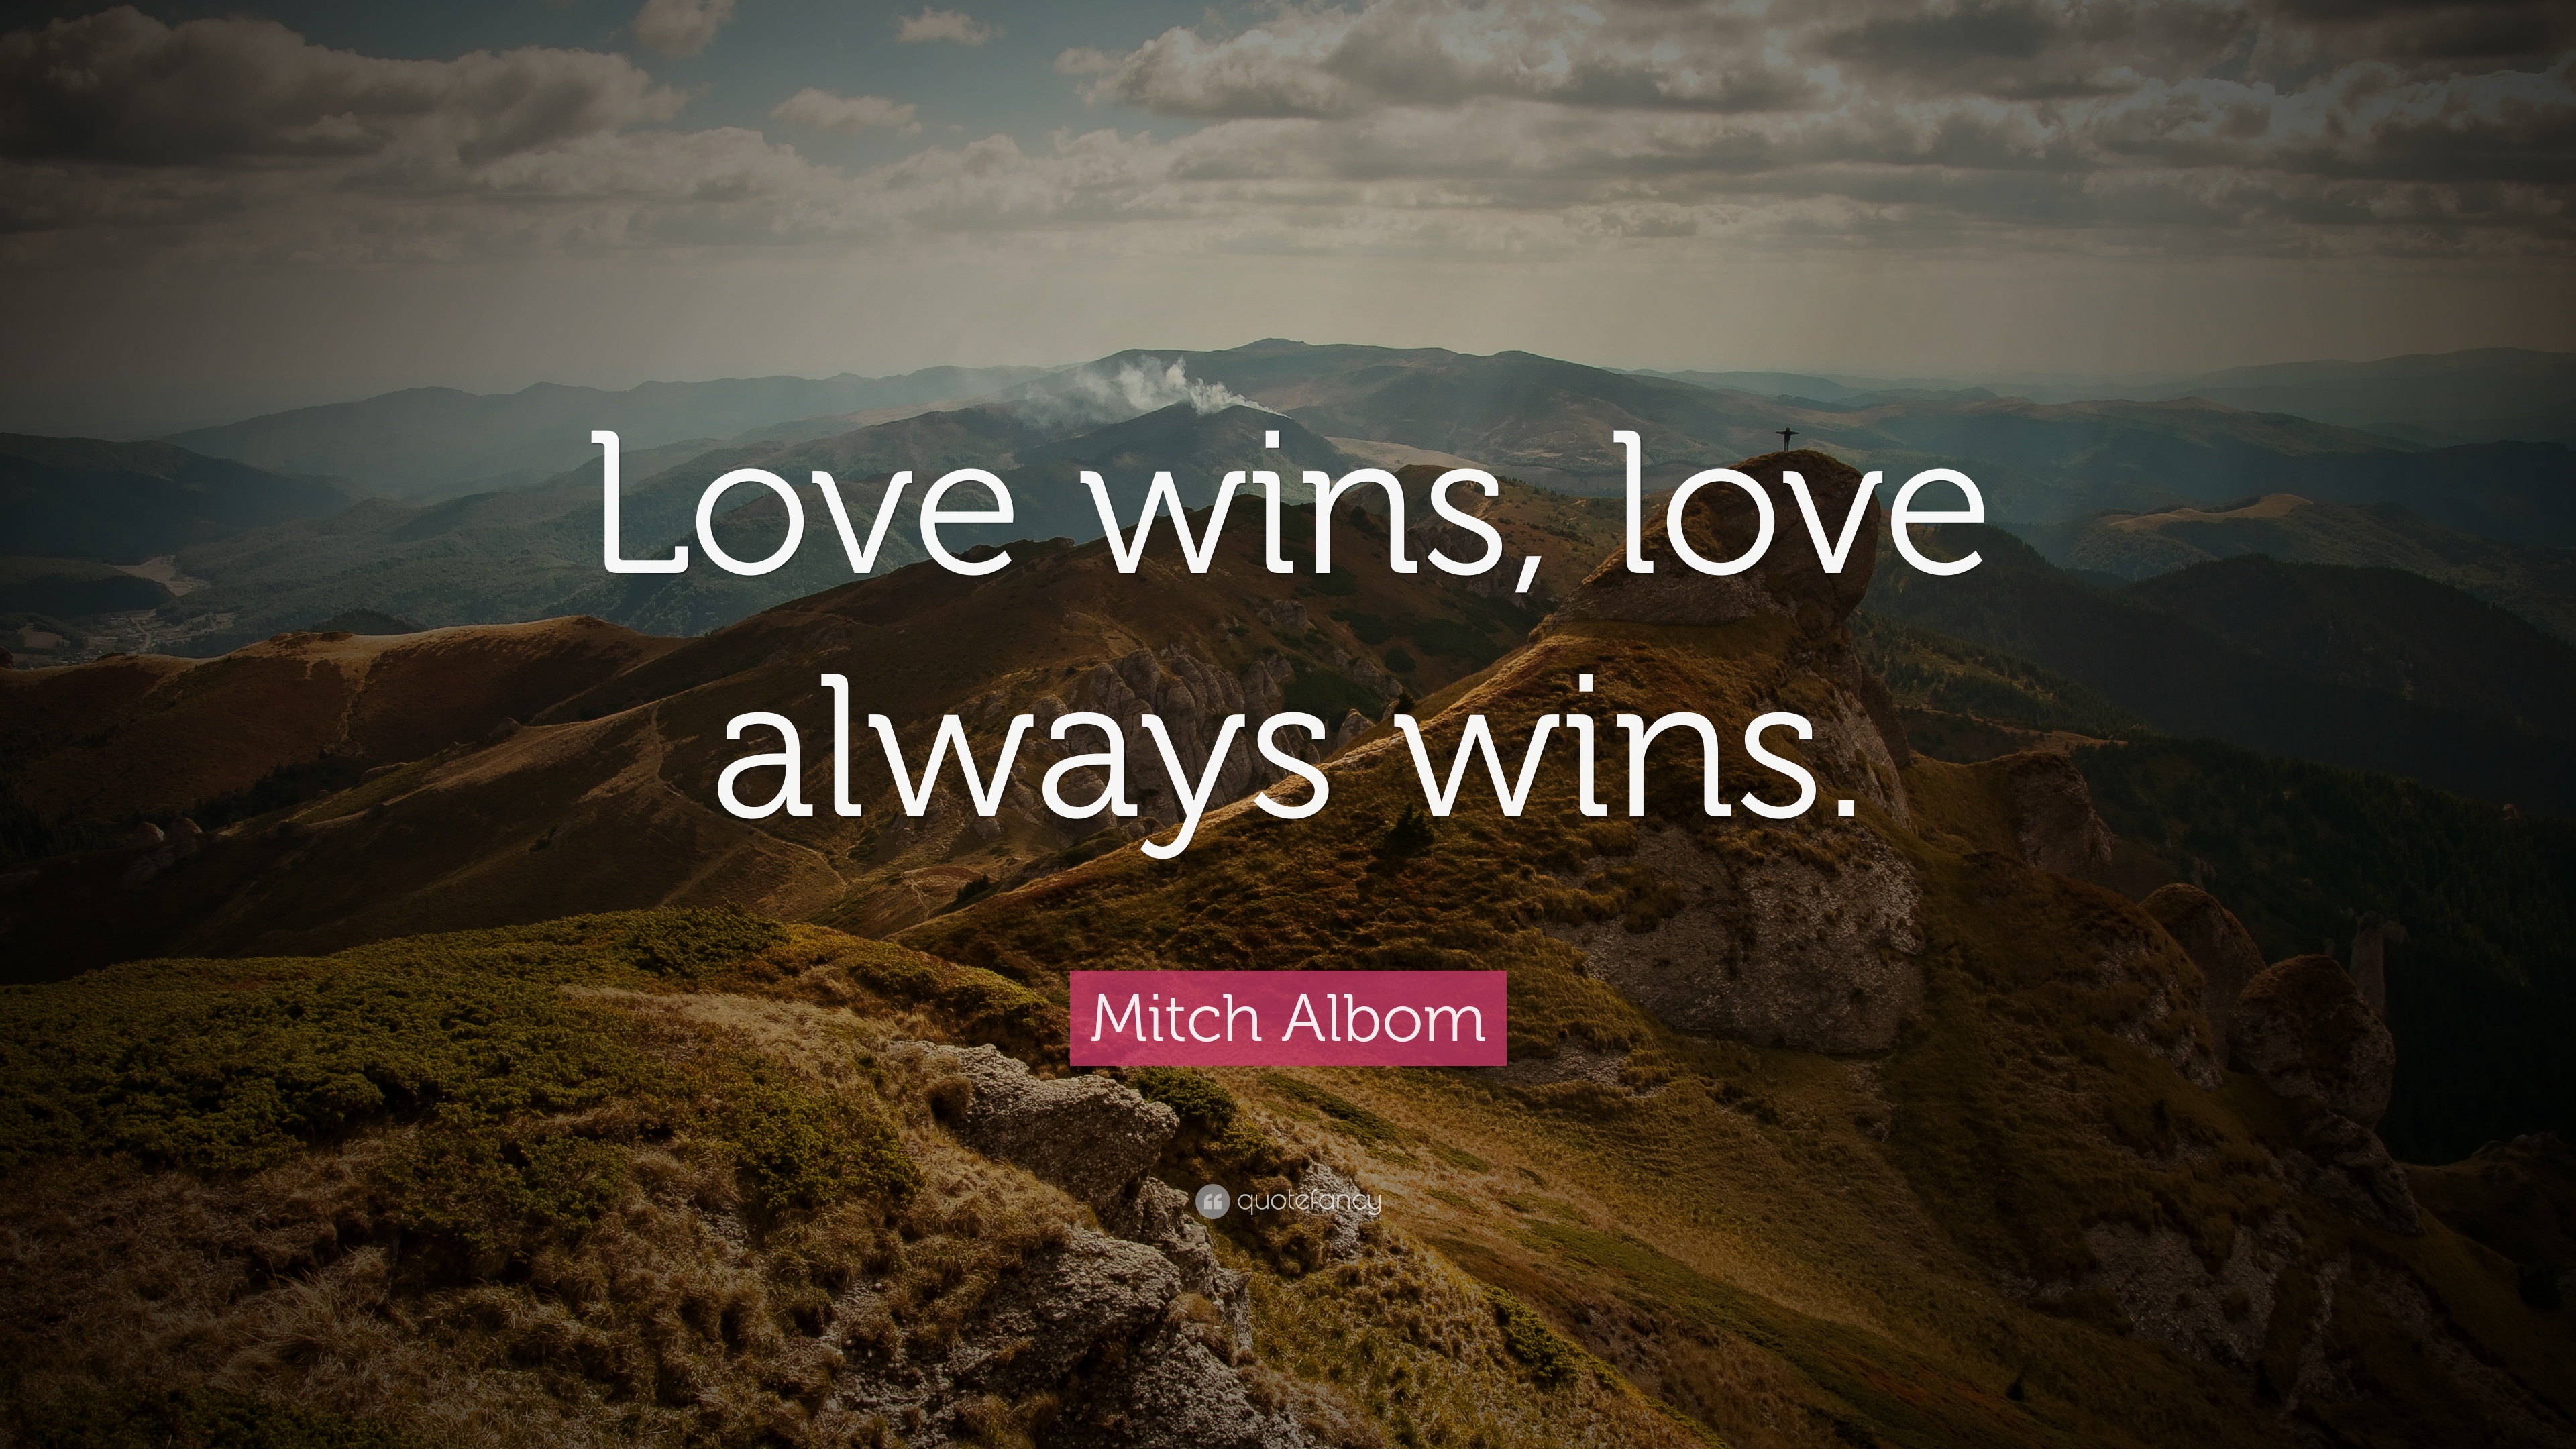 Quotes About Love Wins : Mitch Albom Quote: ?Love wins, love always wins.? (10 wallpapers ...